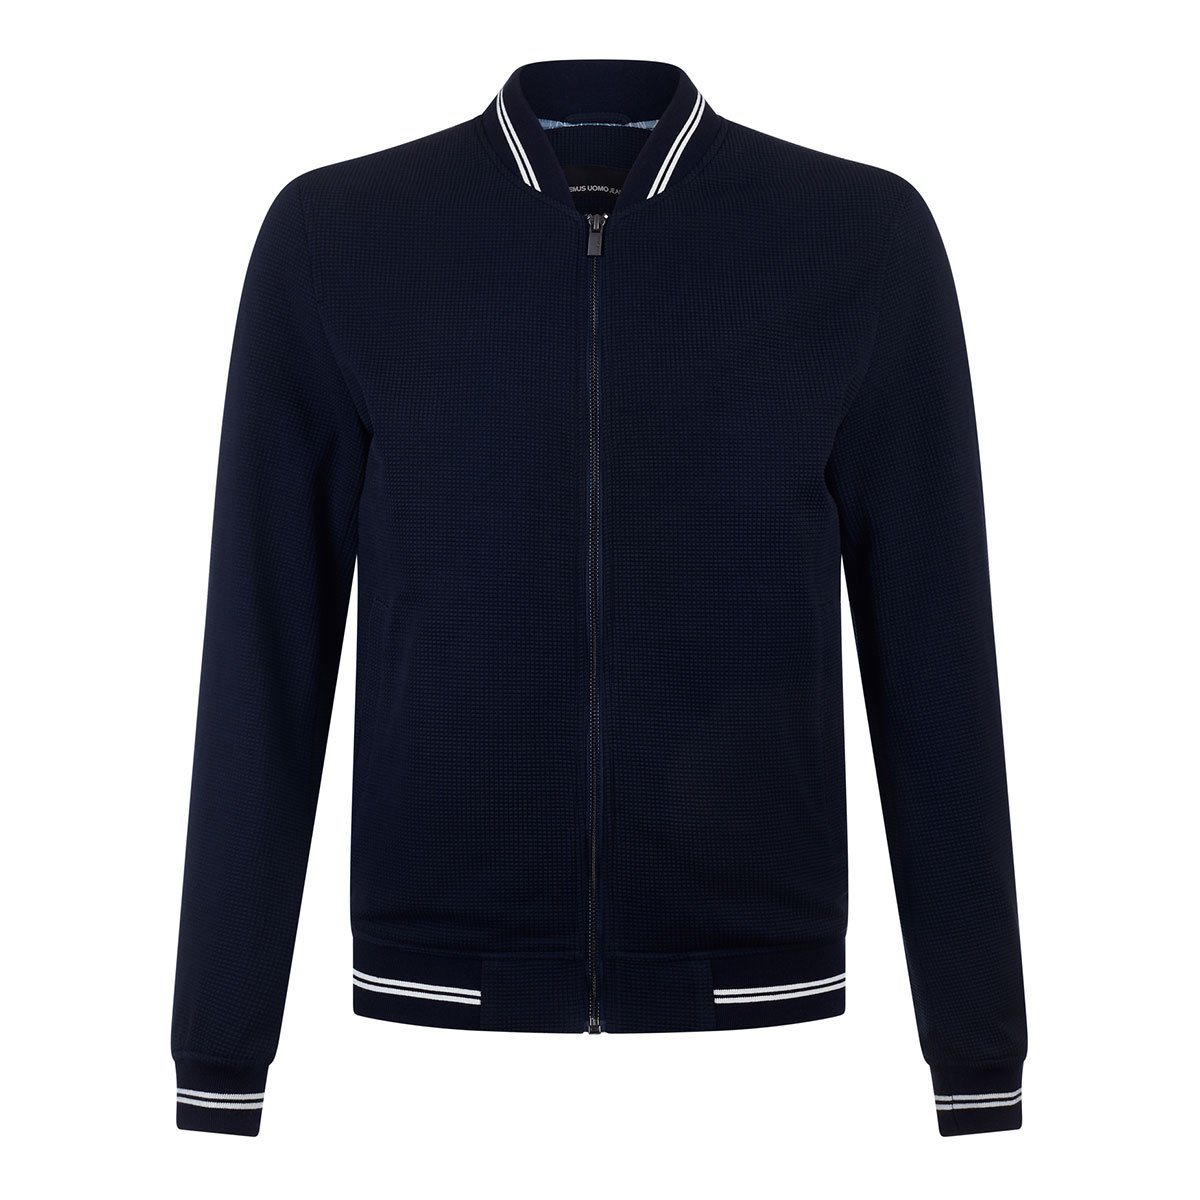 Navy Textured Bomber Jacket